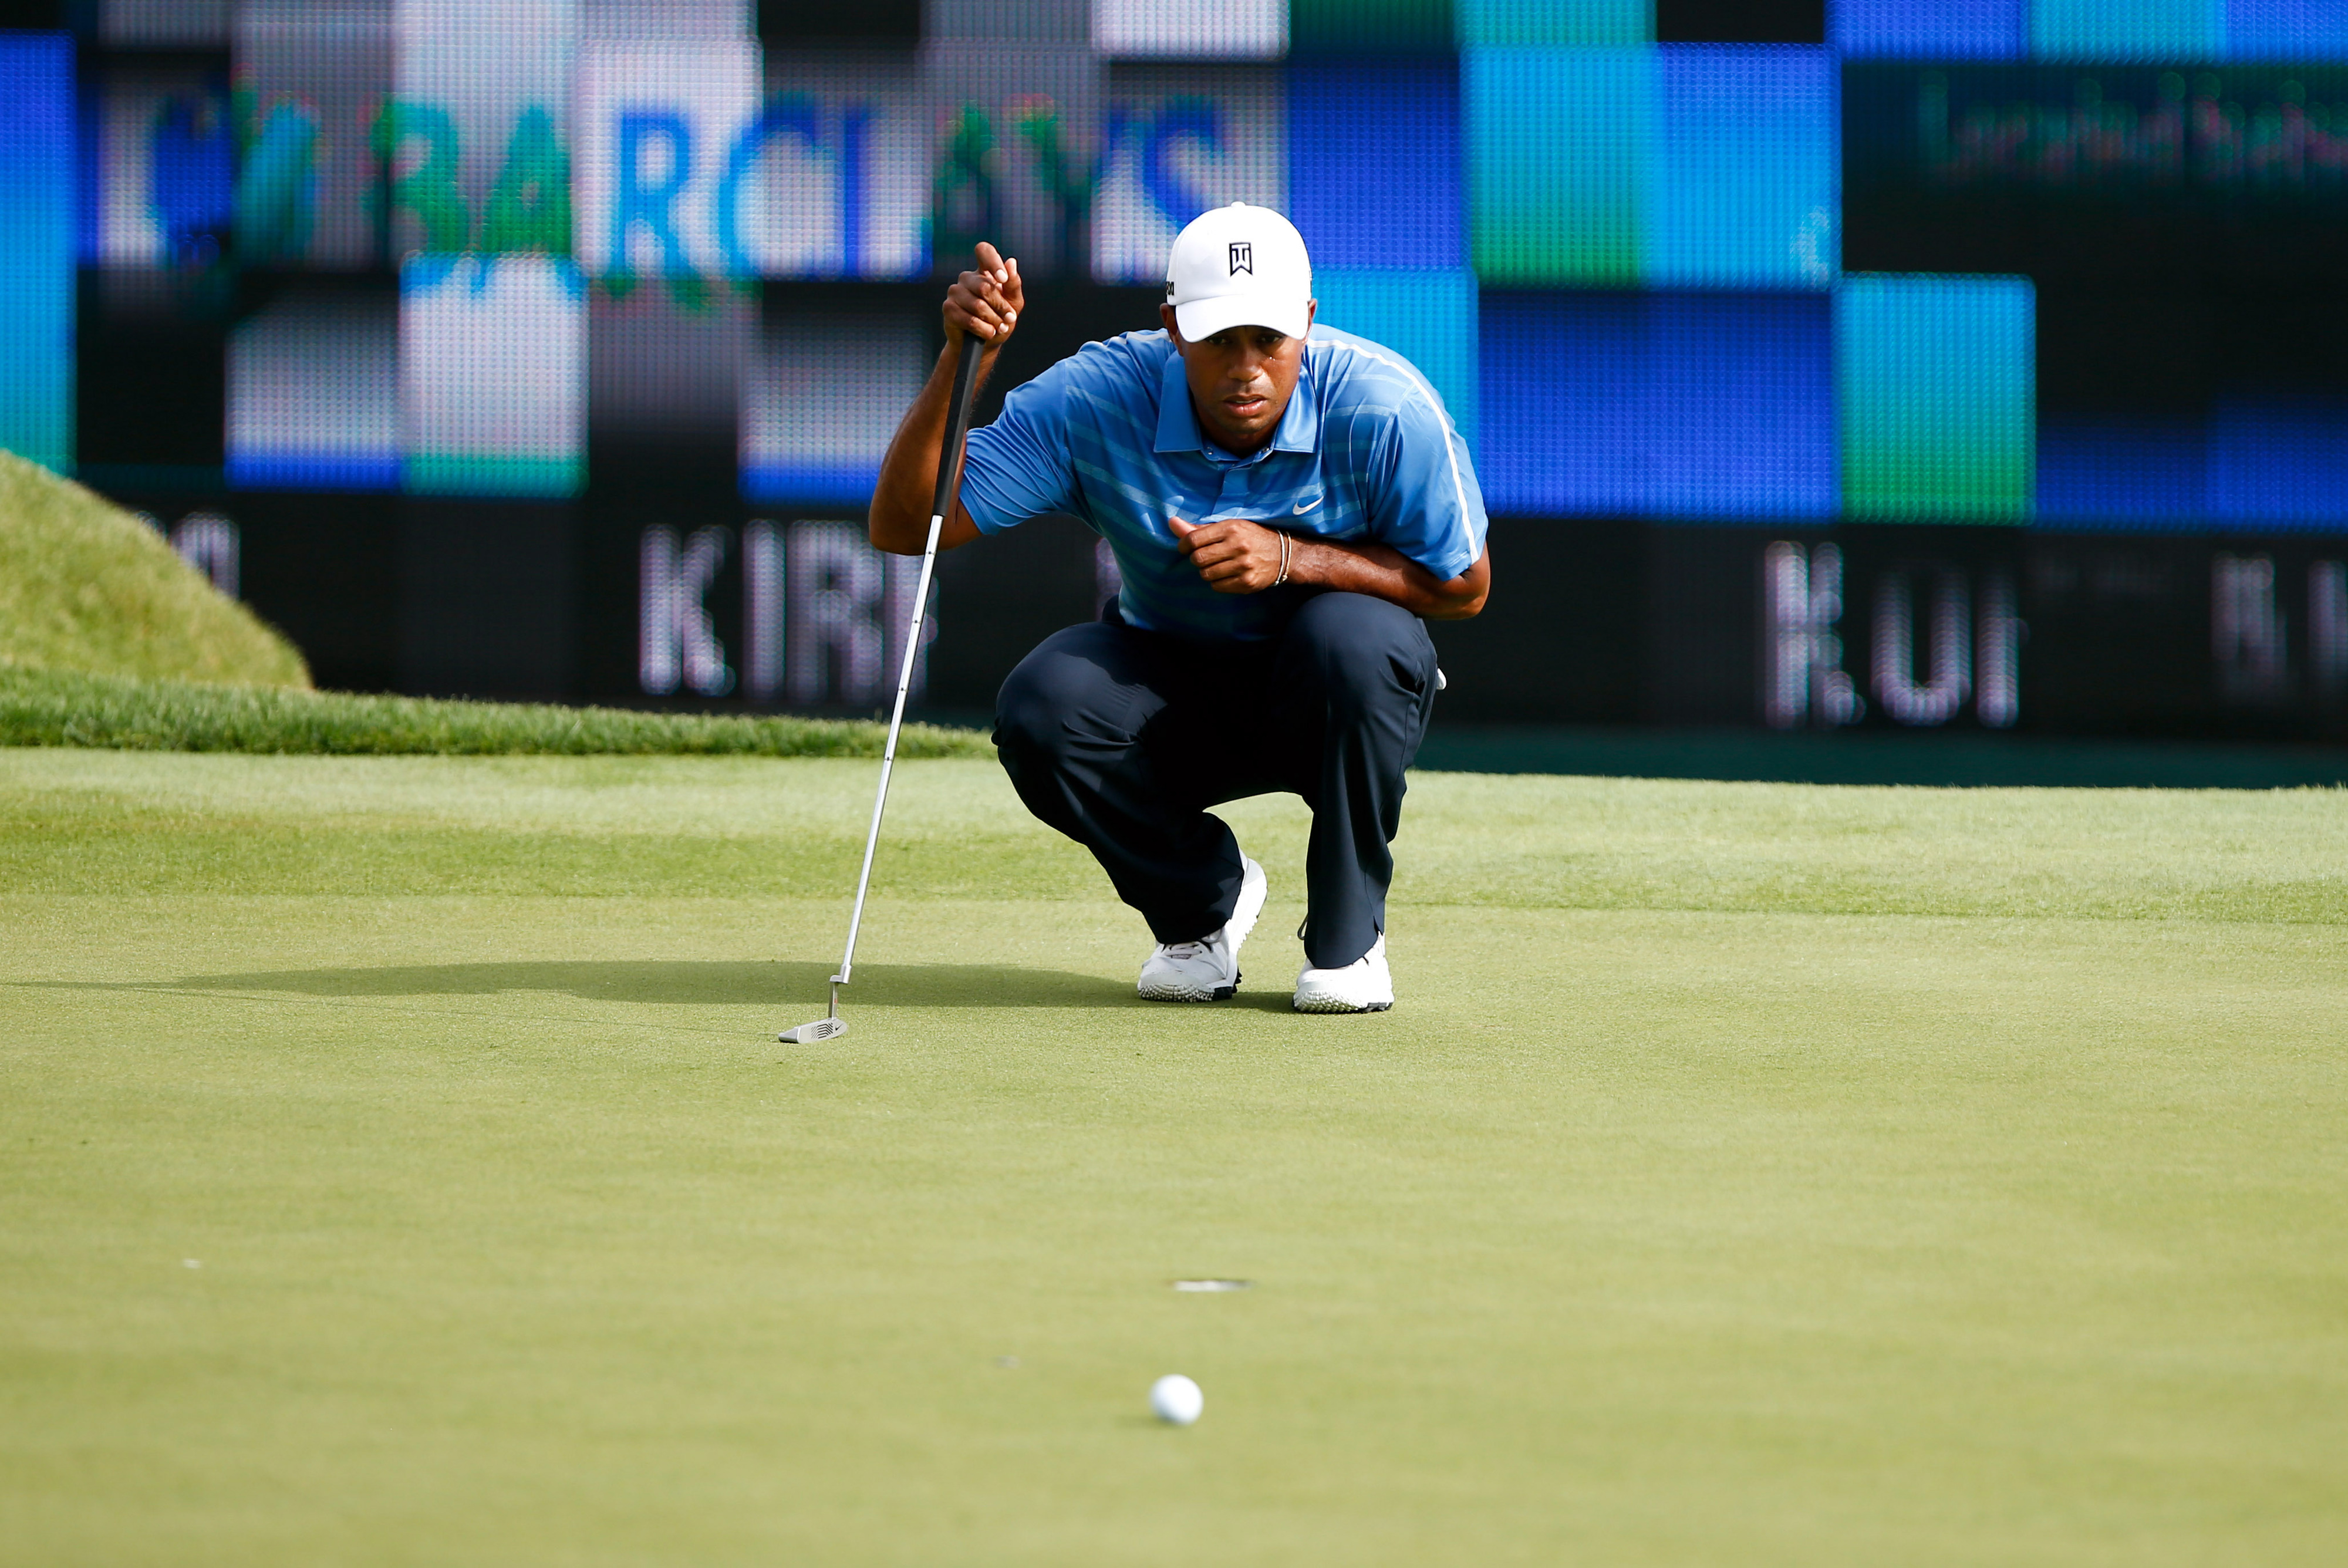 2013 Barclays golf leaderboard: Tiger Woods opens well then falls back